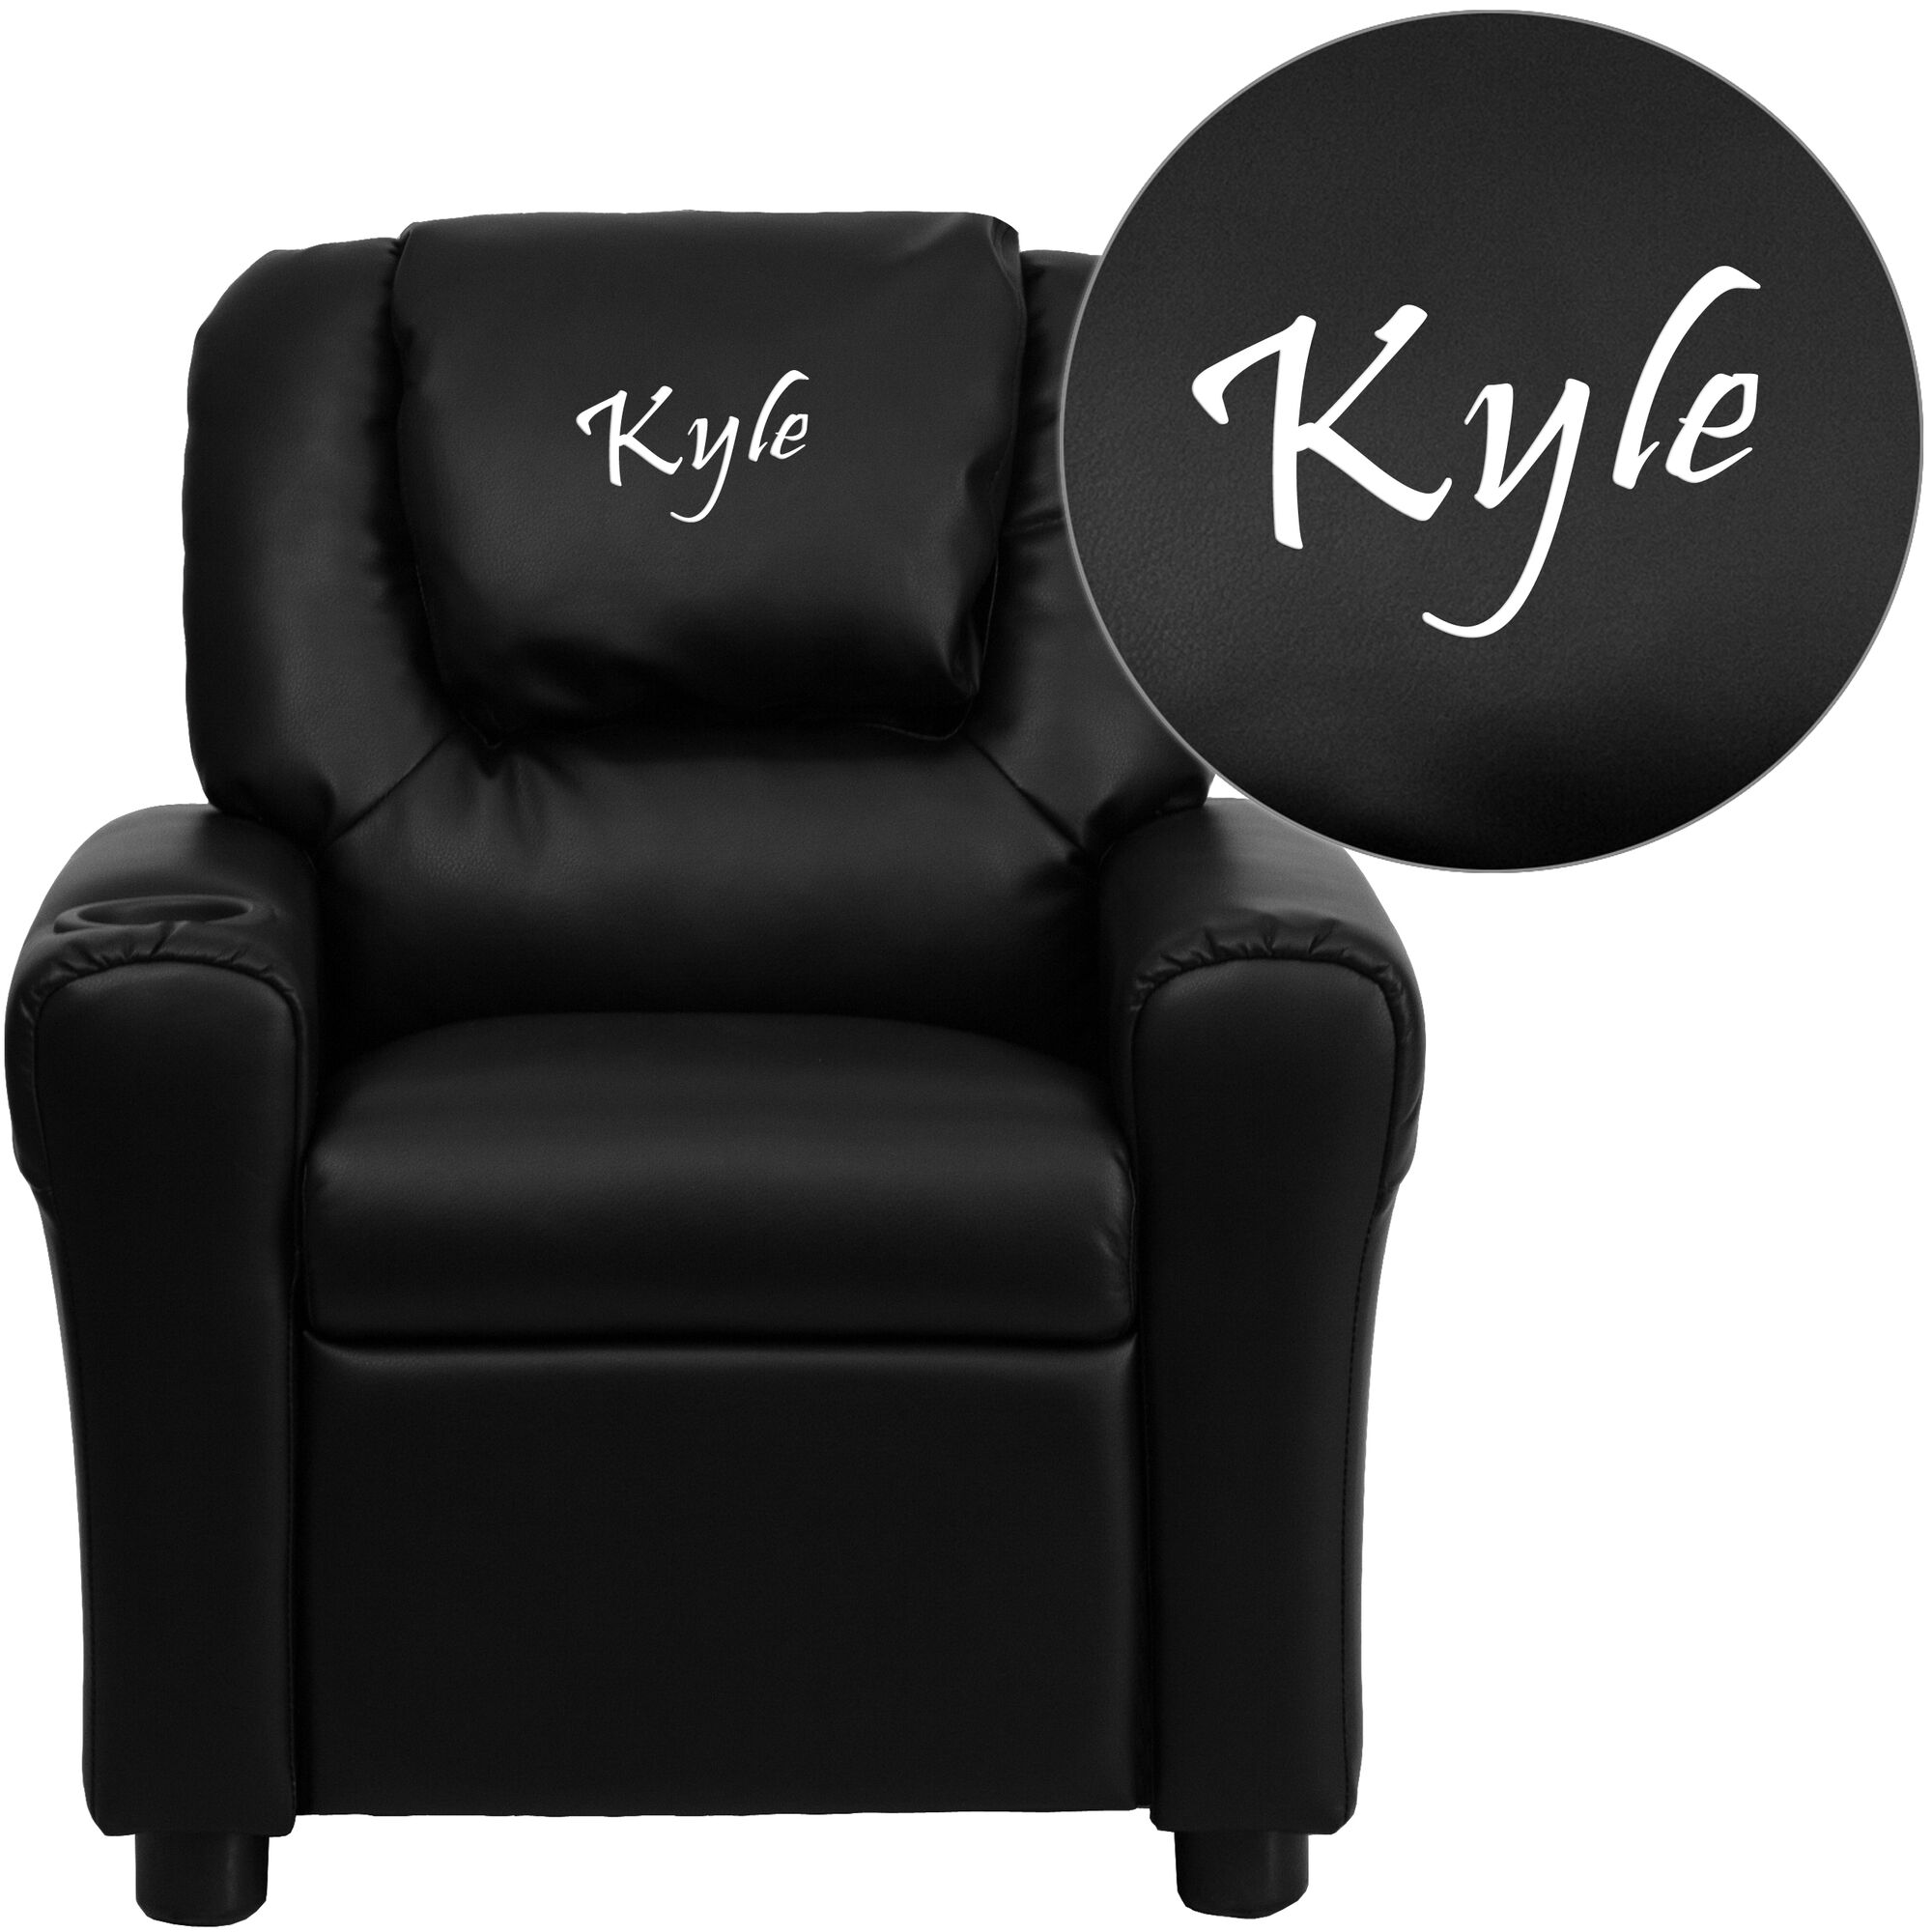 personalized black leathersoft kids recliner with cup holder and headrest